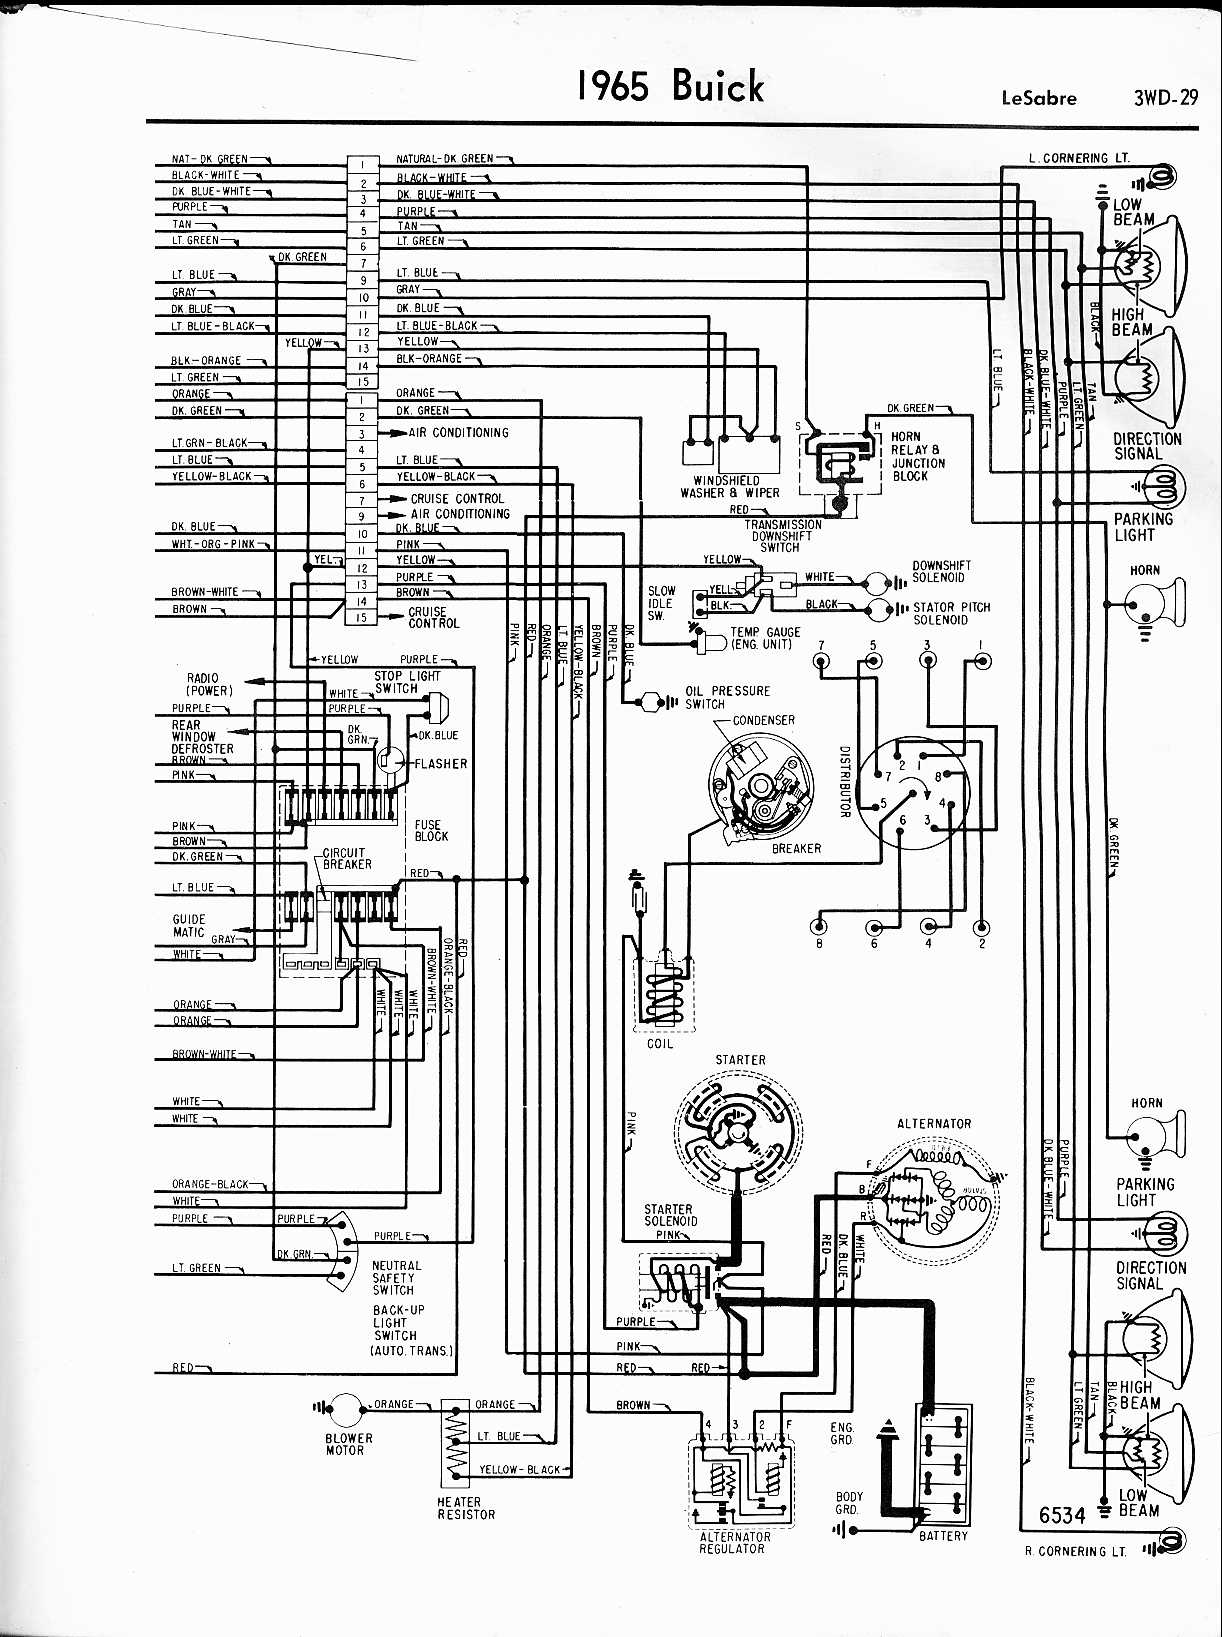 Groovy Datsun Roadster Wiring Diagram Get Free Image About Wiring Diagram Wiring Cloud Hemtegremohammedshrineorg